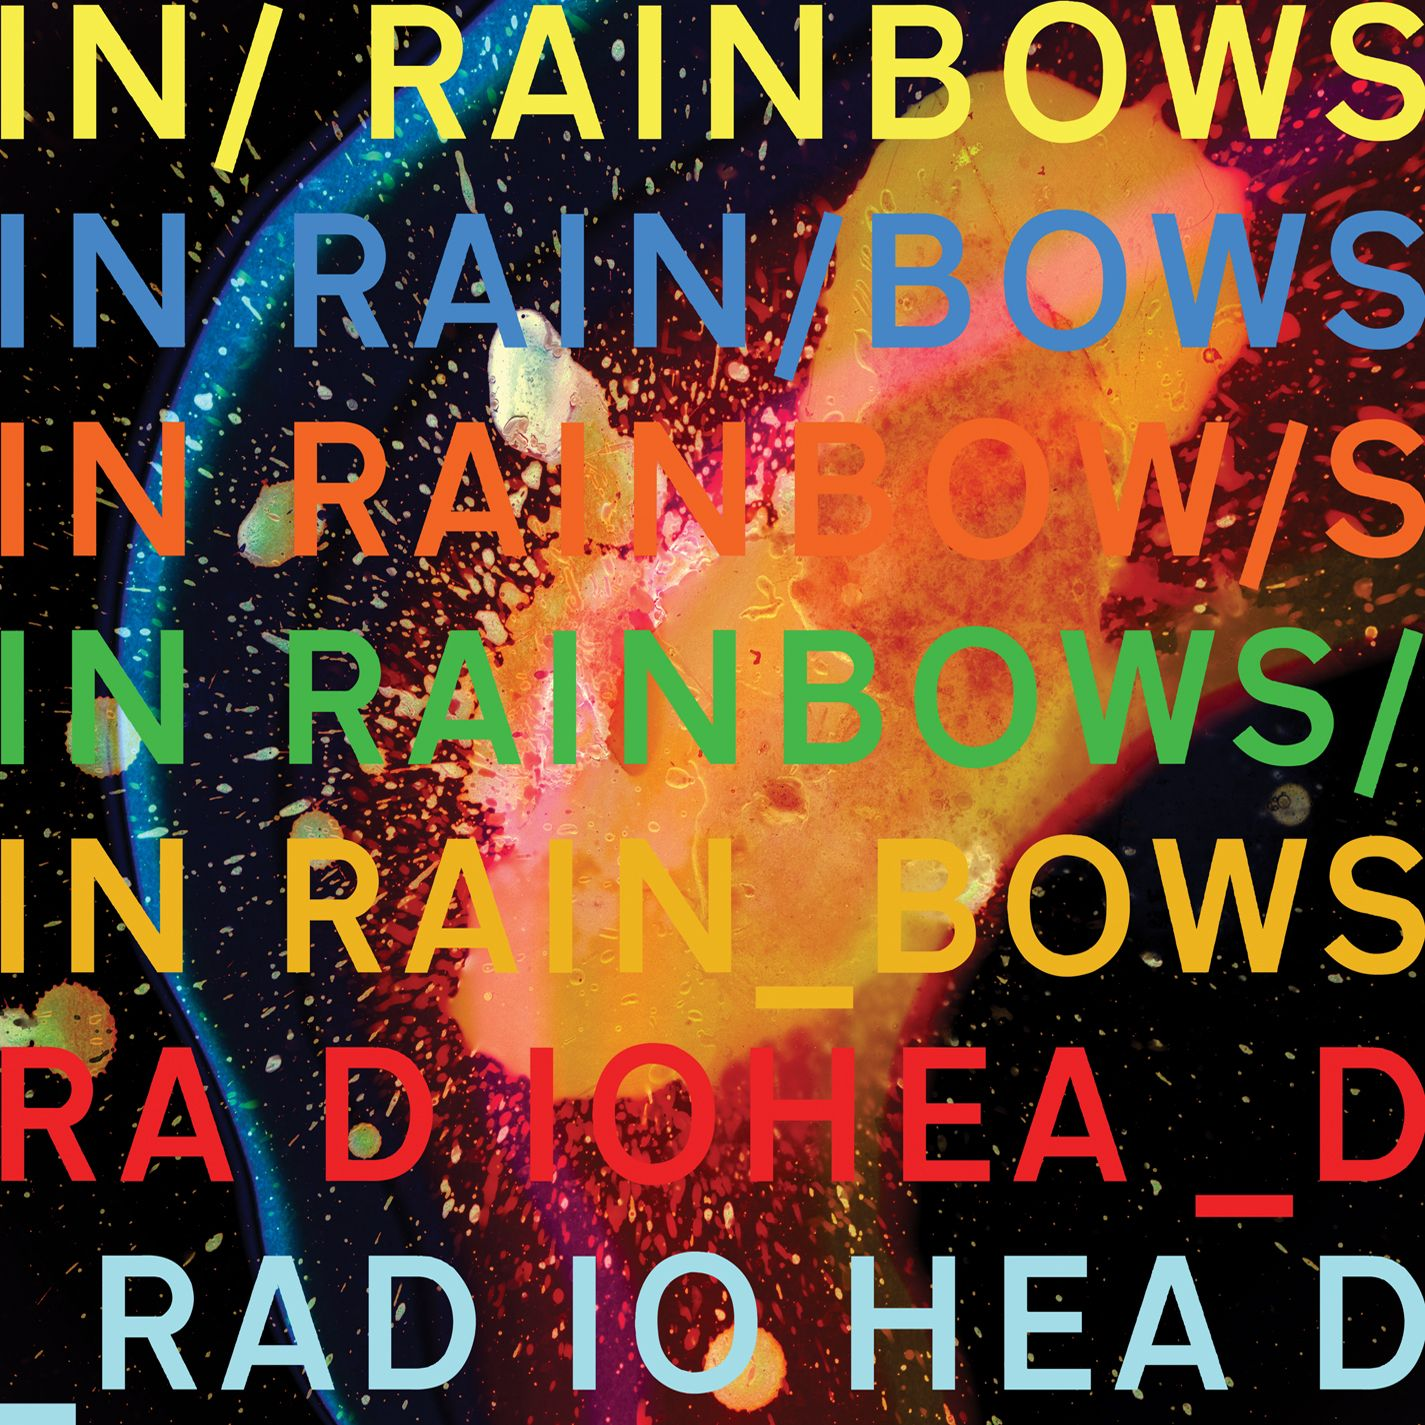 Radiohead - In Rainbows album cover